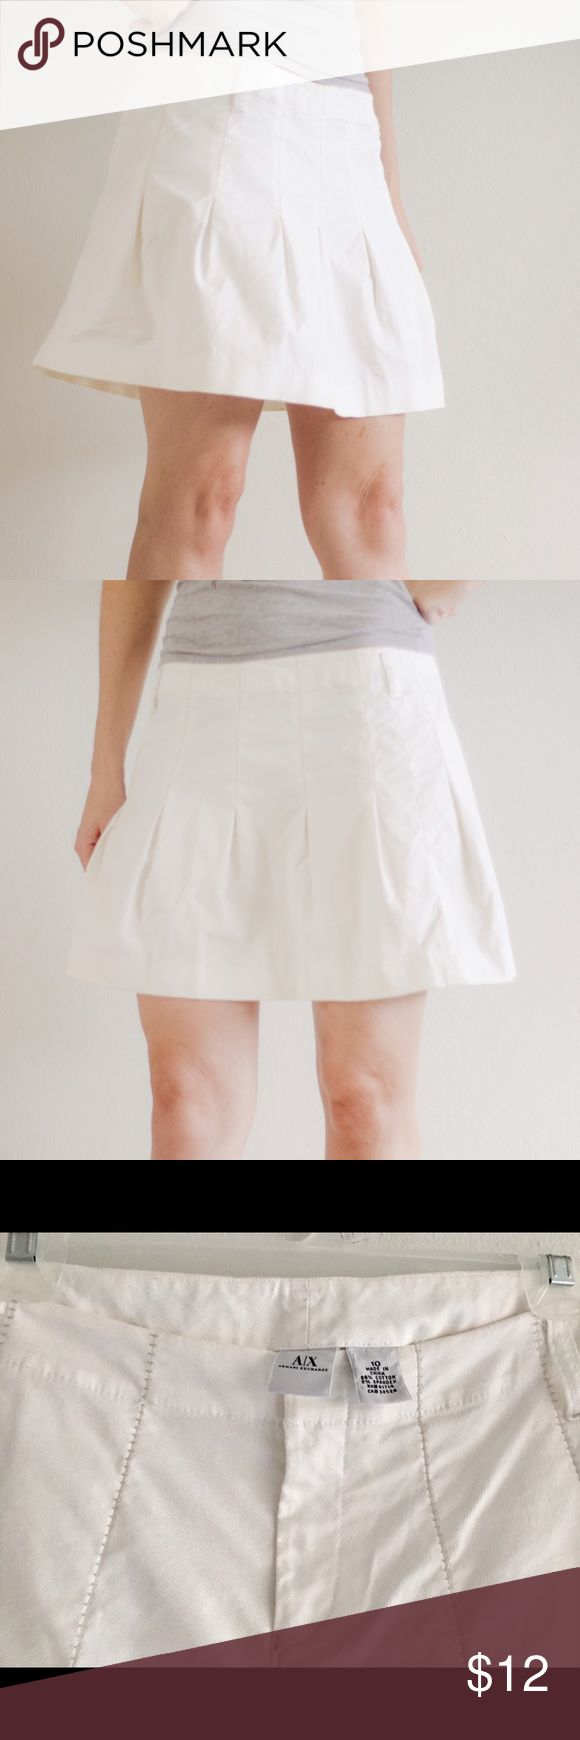 Armani Exchange White Skirt This classy skirt is in perfect condition. I love their wide and cozy style. I used it only twice. It has zipper in the front and handles for the belt. 98% cotton, 2% spandex. Size: 10  ~All offers welcome  ~Bundle + save ~Available for any questions Armani Exchange Skirts Mini